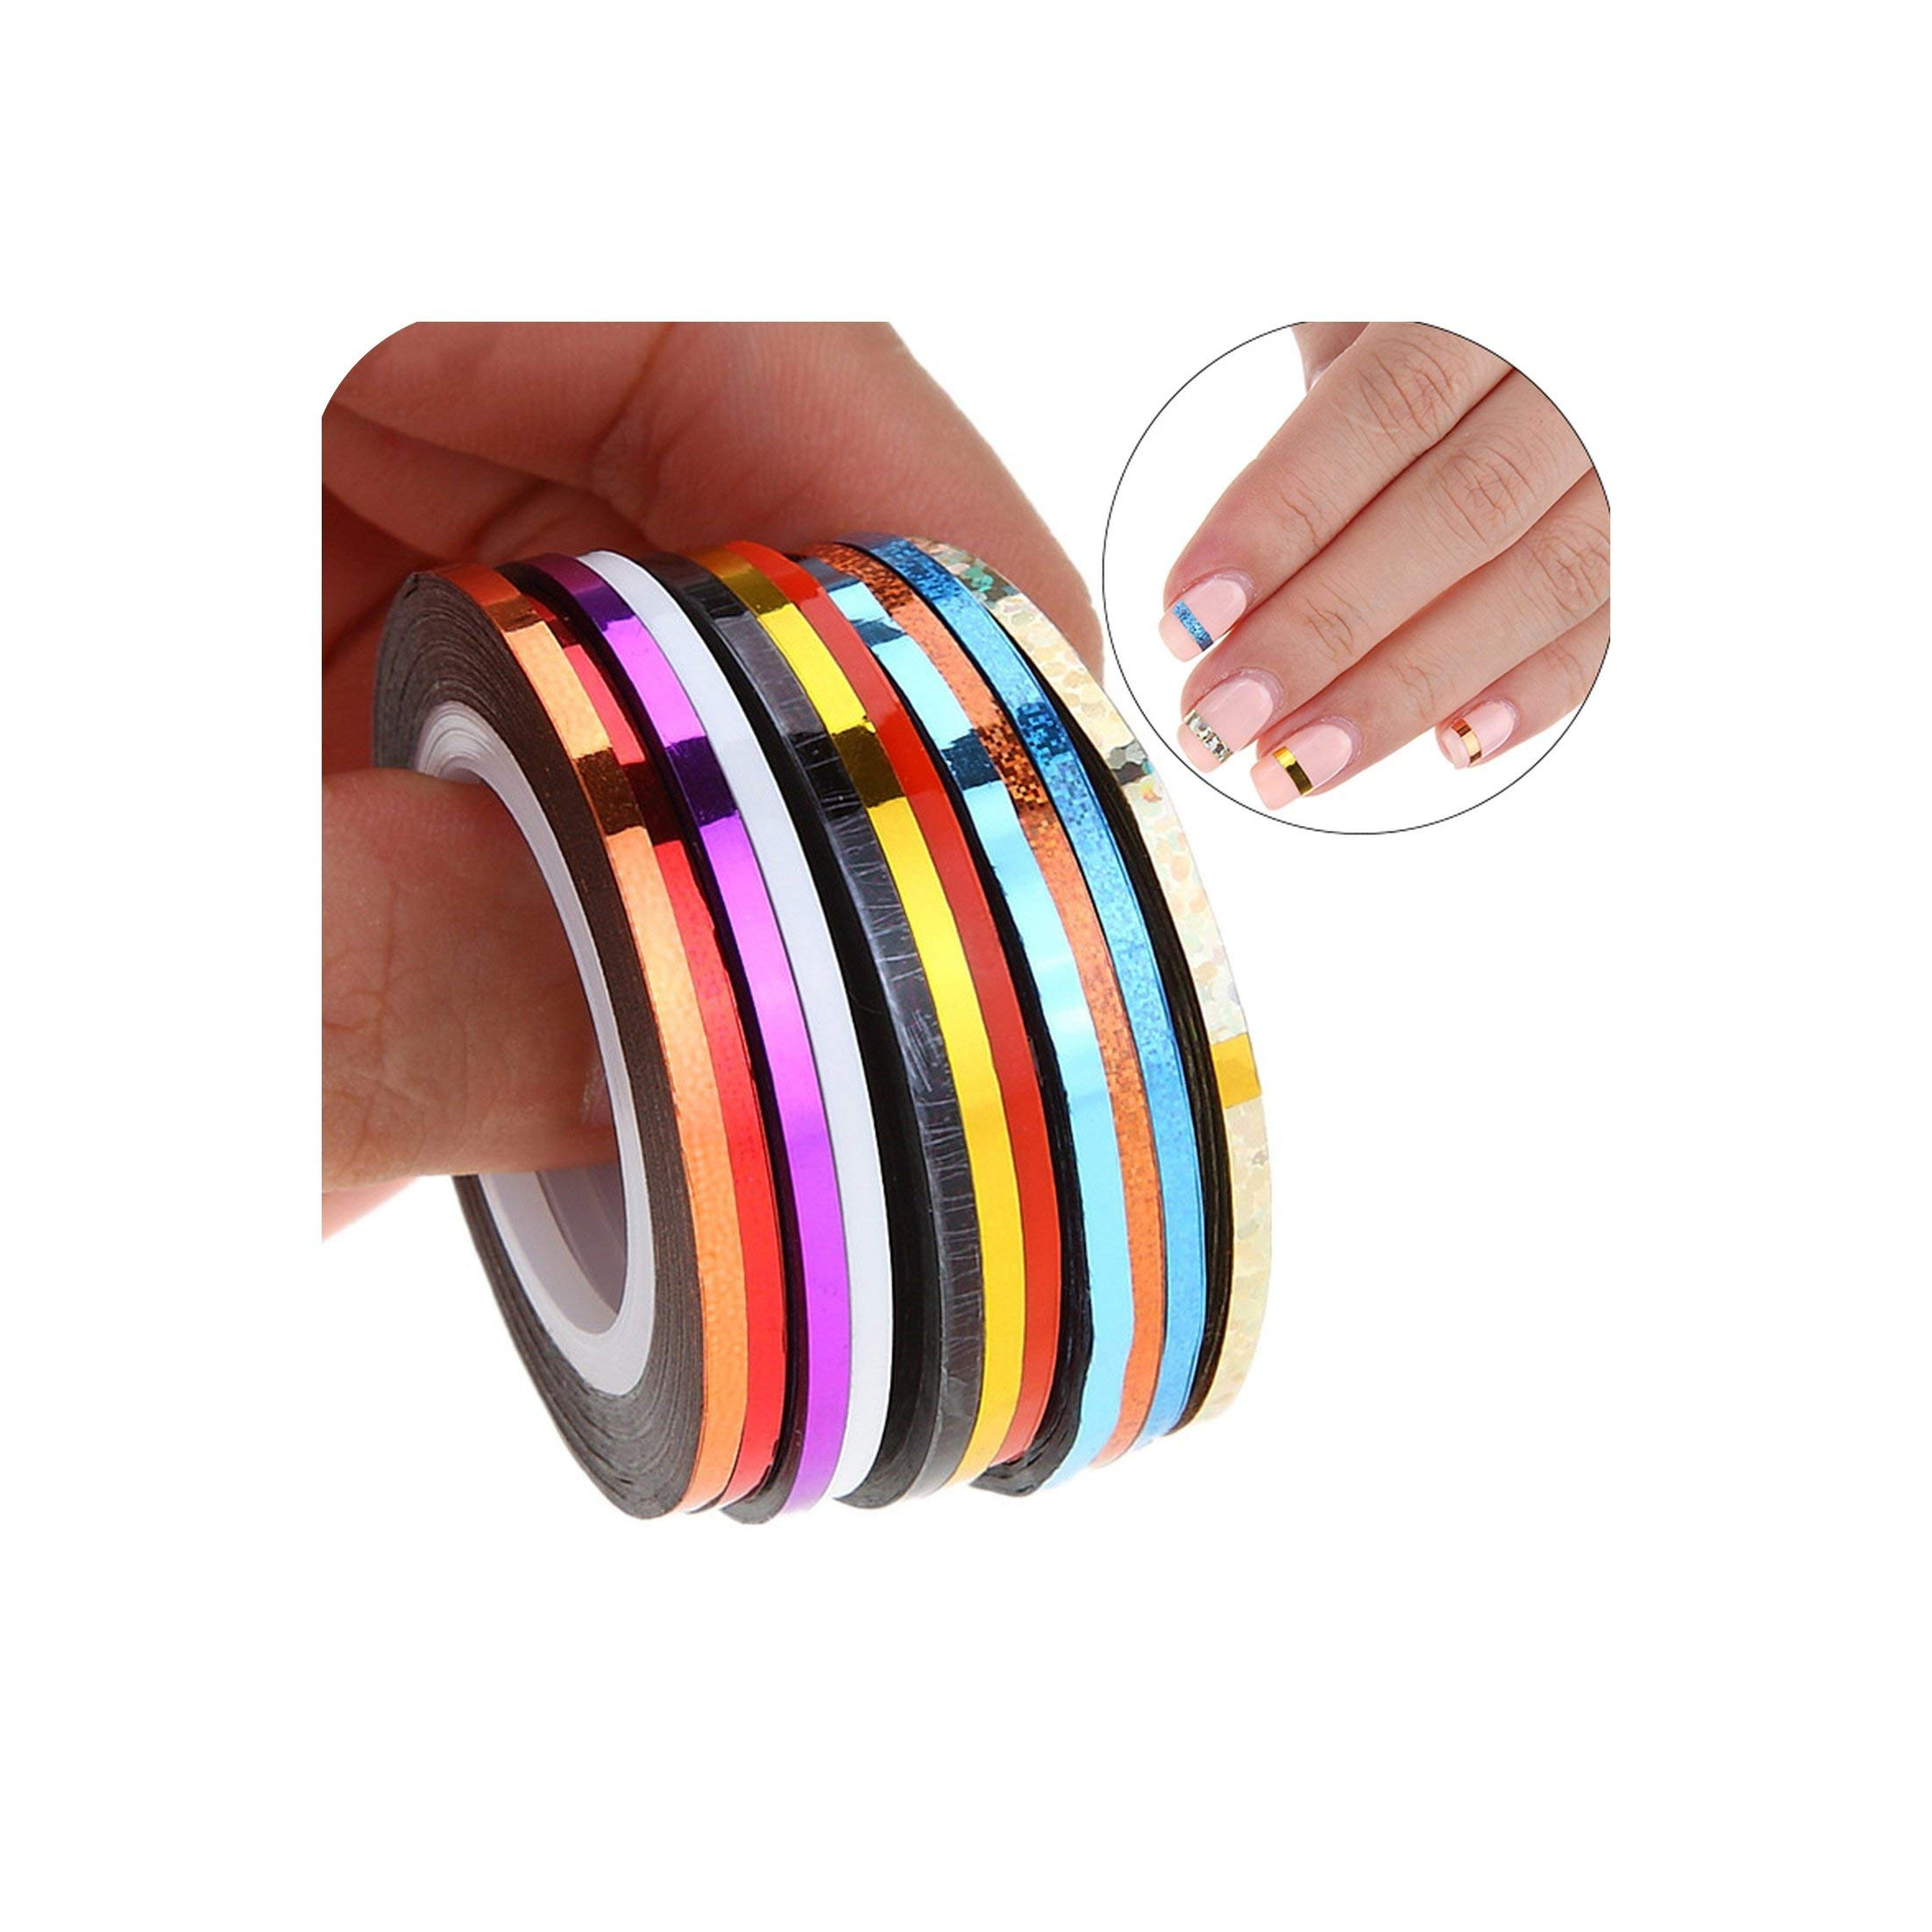 10Pcs 2Mm Mix Colors Rolls Metallic Adhesive Striping Tape Wide Line Diy Nail Art Tips Strip Sticker Decal Decoration Kit,as show by Mango-ice